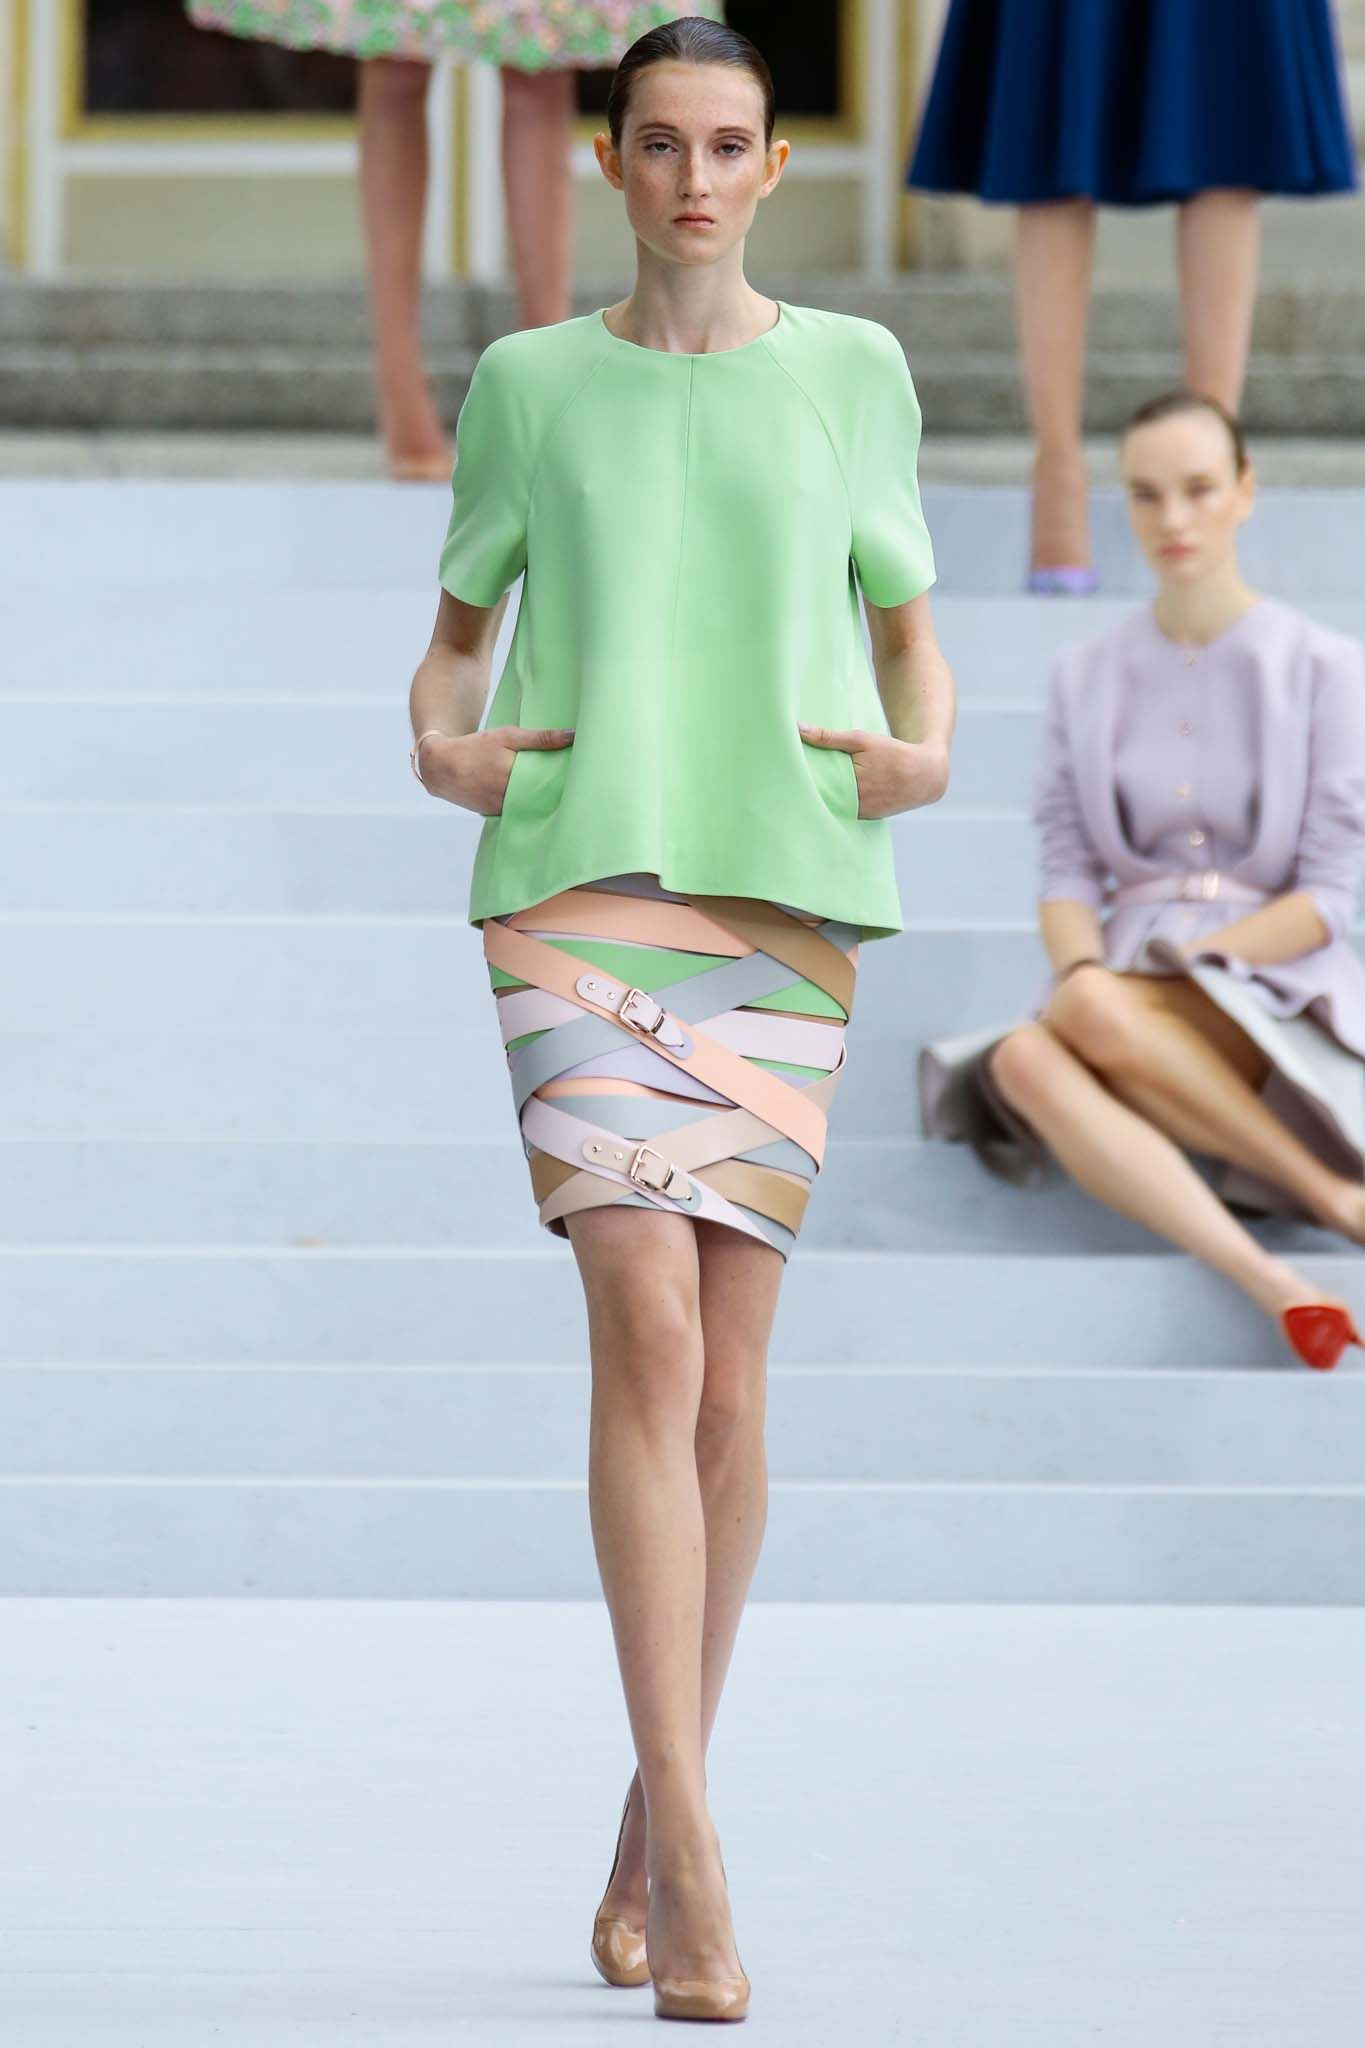 Marina Hoermanseder - Berlin Spring 2016 - Look 16 of 30?url=http://www.style.com/slideshows/fashion-shows/berlin-spring-2016/marina-hoermanseder/collection/16